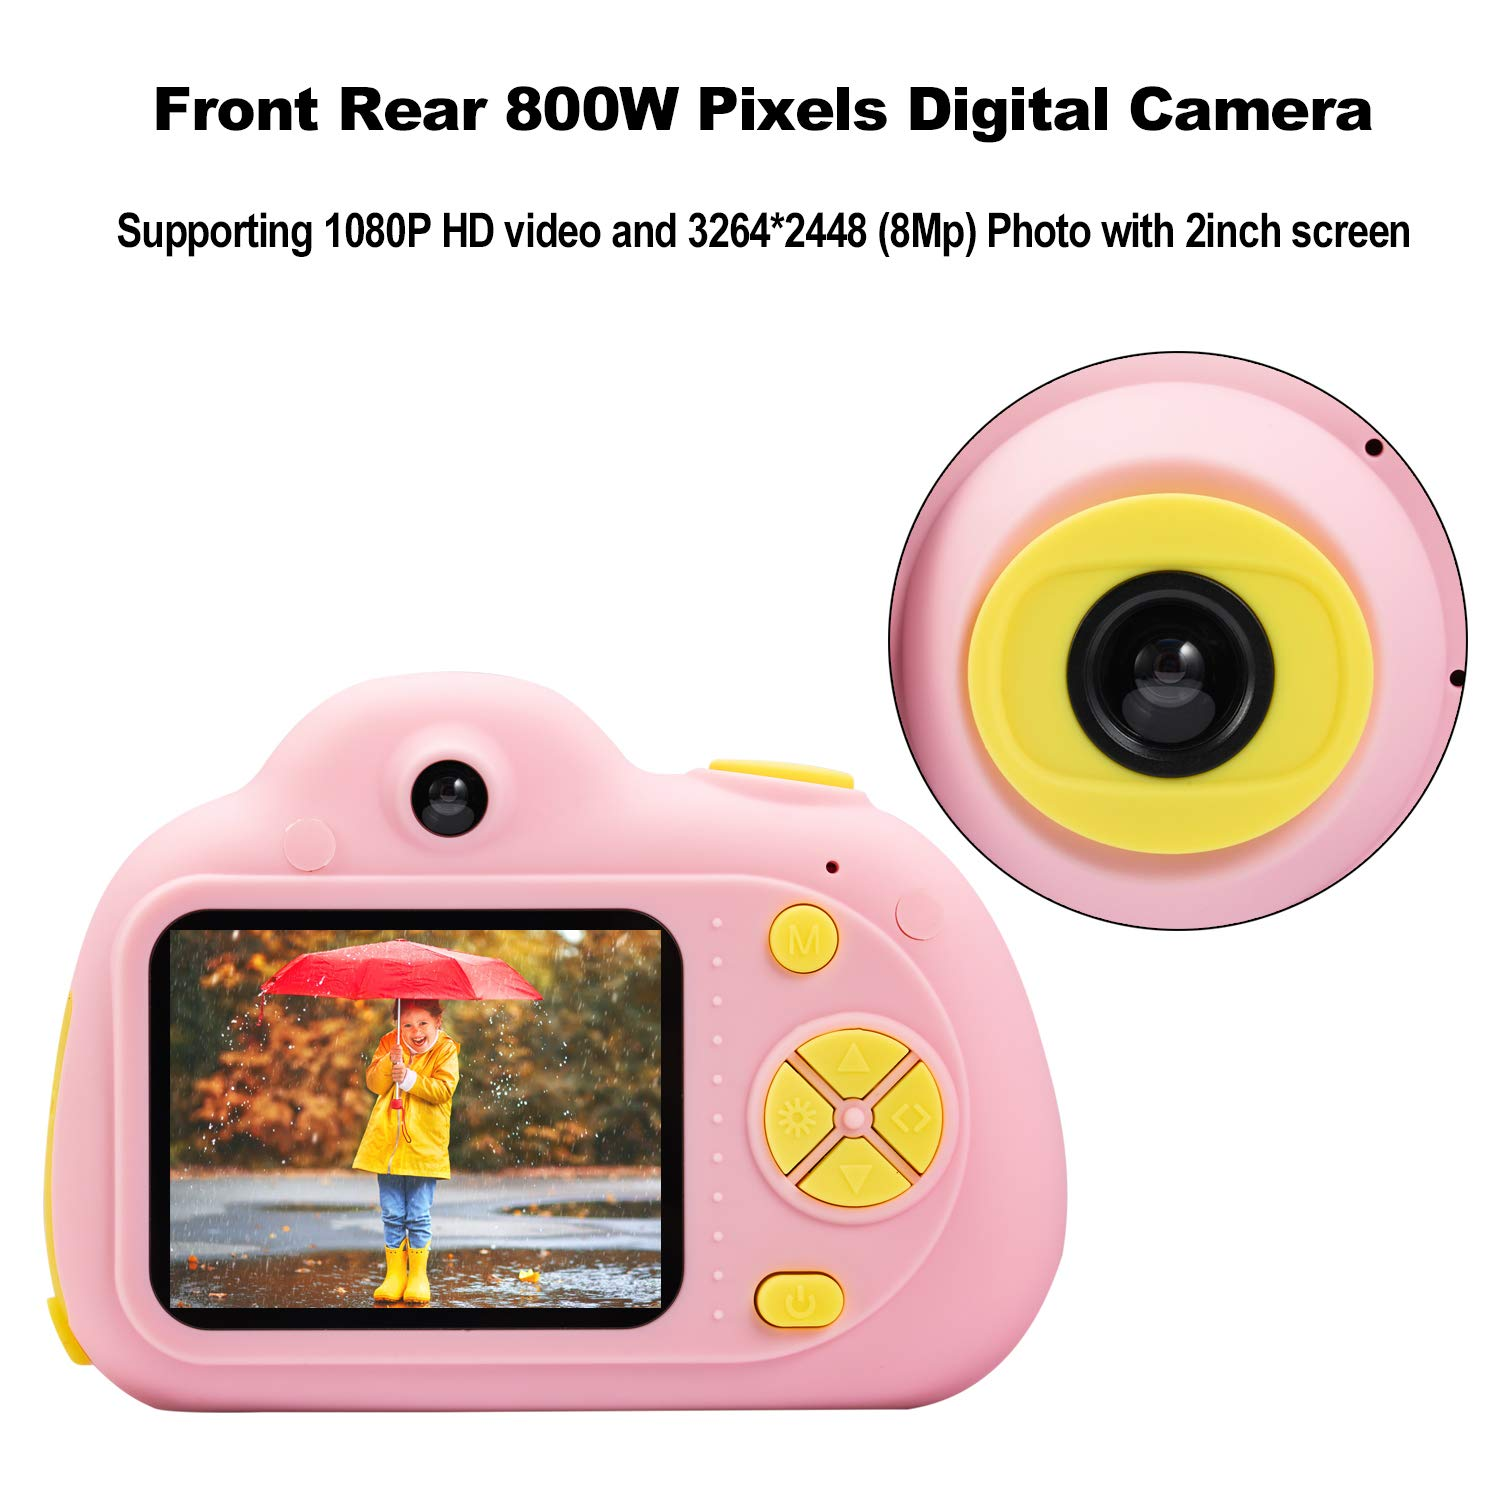 Abdtech Kids Camera Video Cameras Gifts for Girls, Mini Rechargeable Children Shockproof Digital Camcorders Little Girl Toys Gift 8MP with Battery 2 Inch Screen 16GB SD Card ( Pink ) by Abdtech (Image #2)